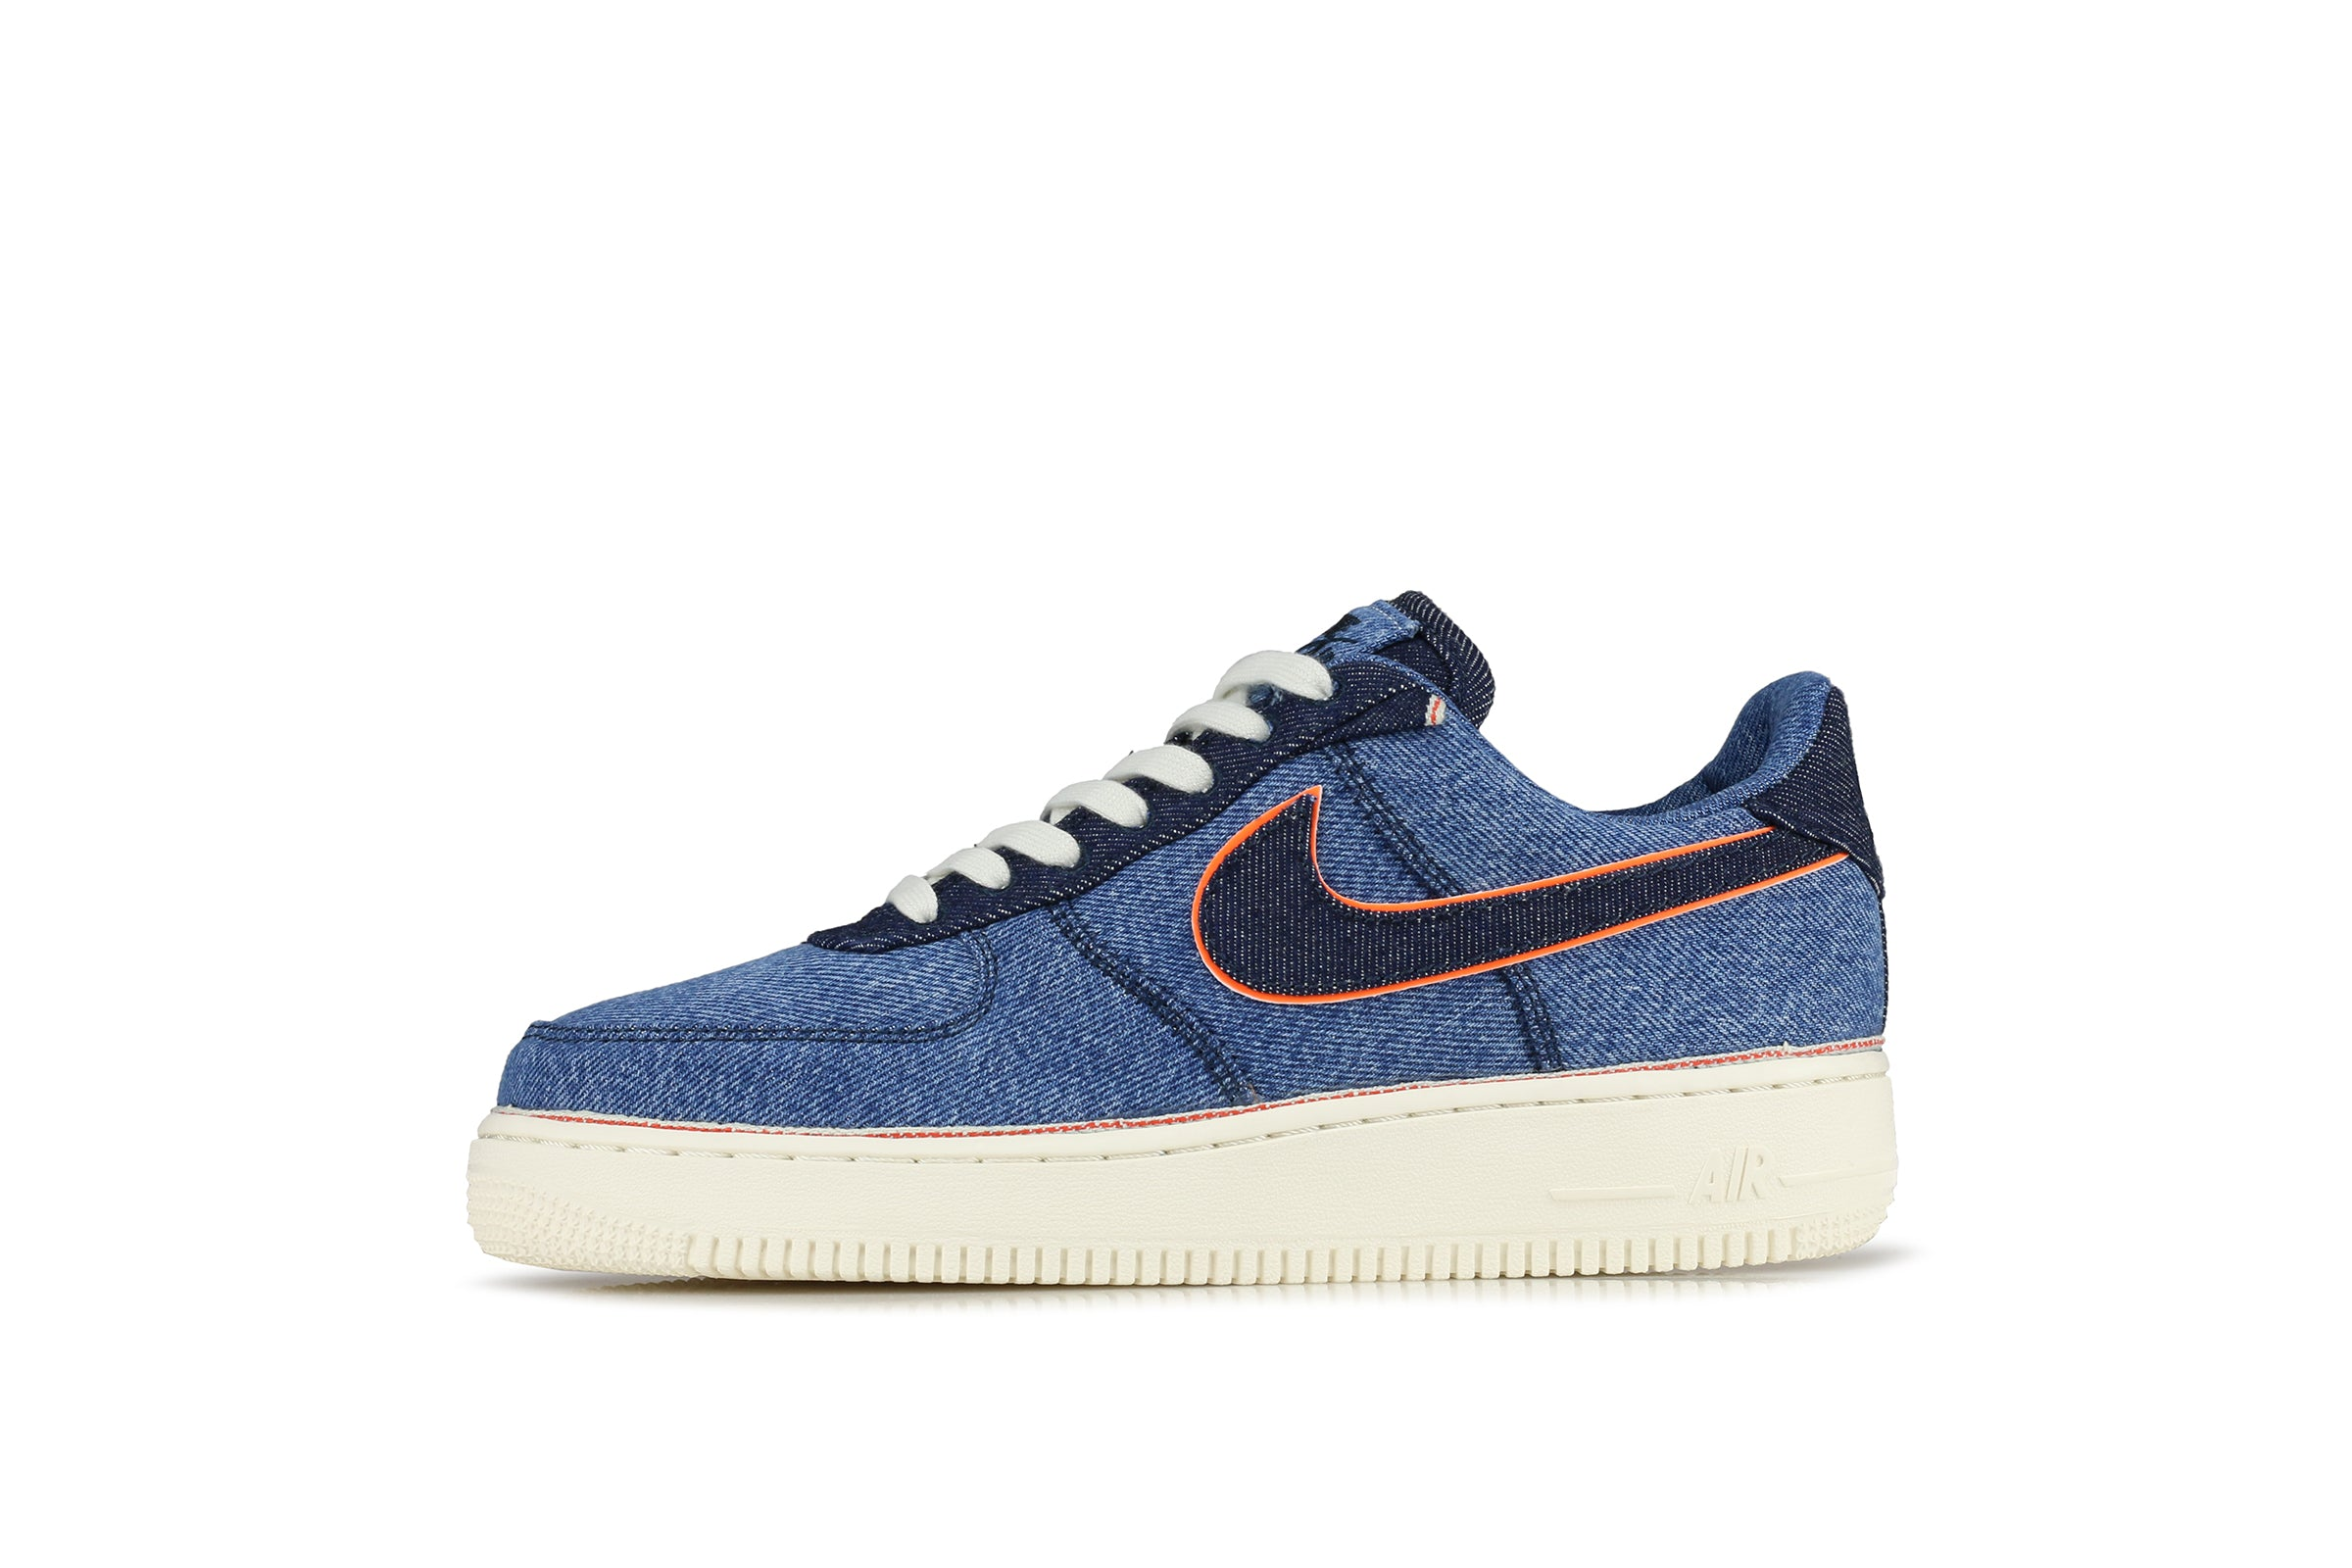 Nike Air Force 1 '07 Premium 3x1 Denim